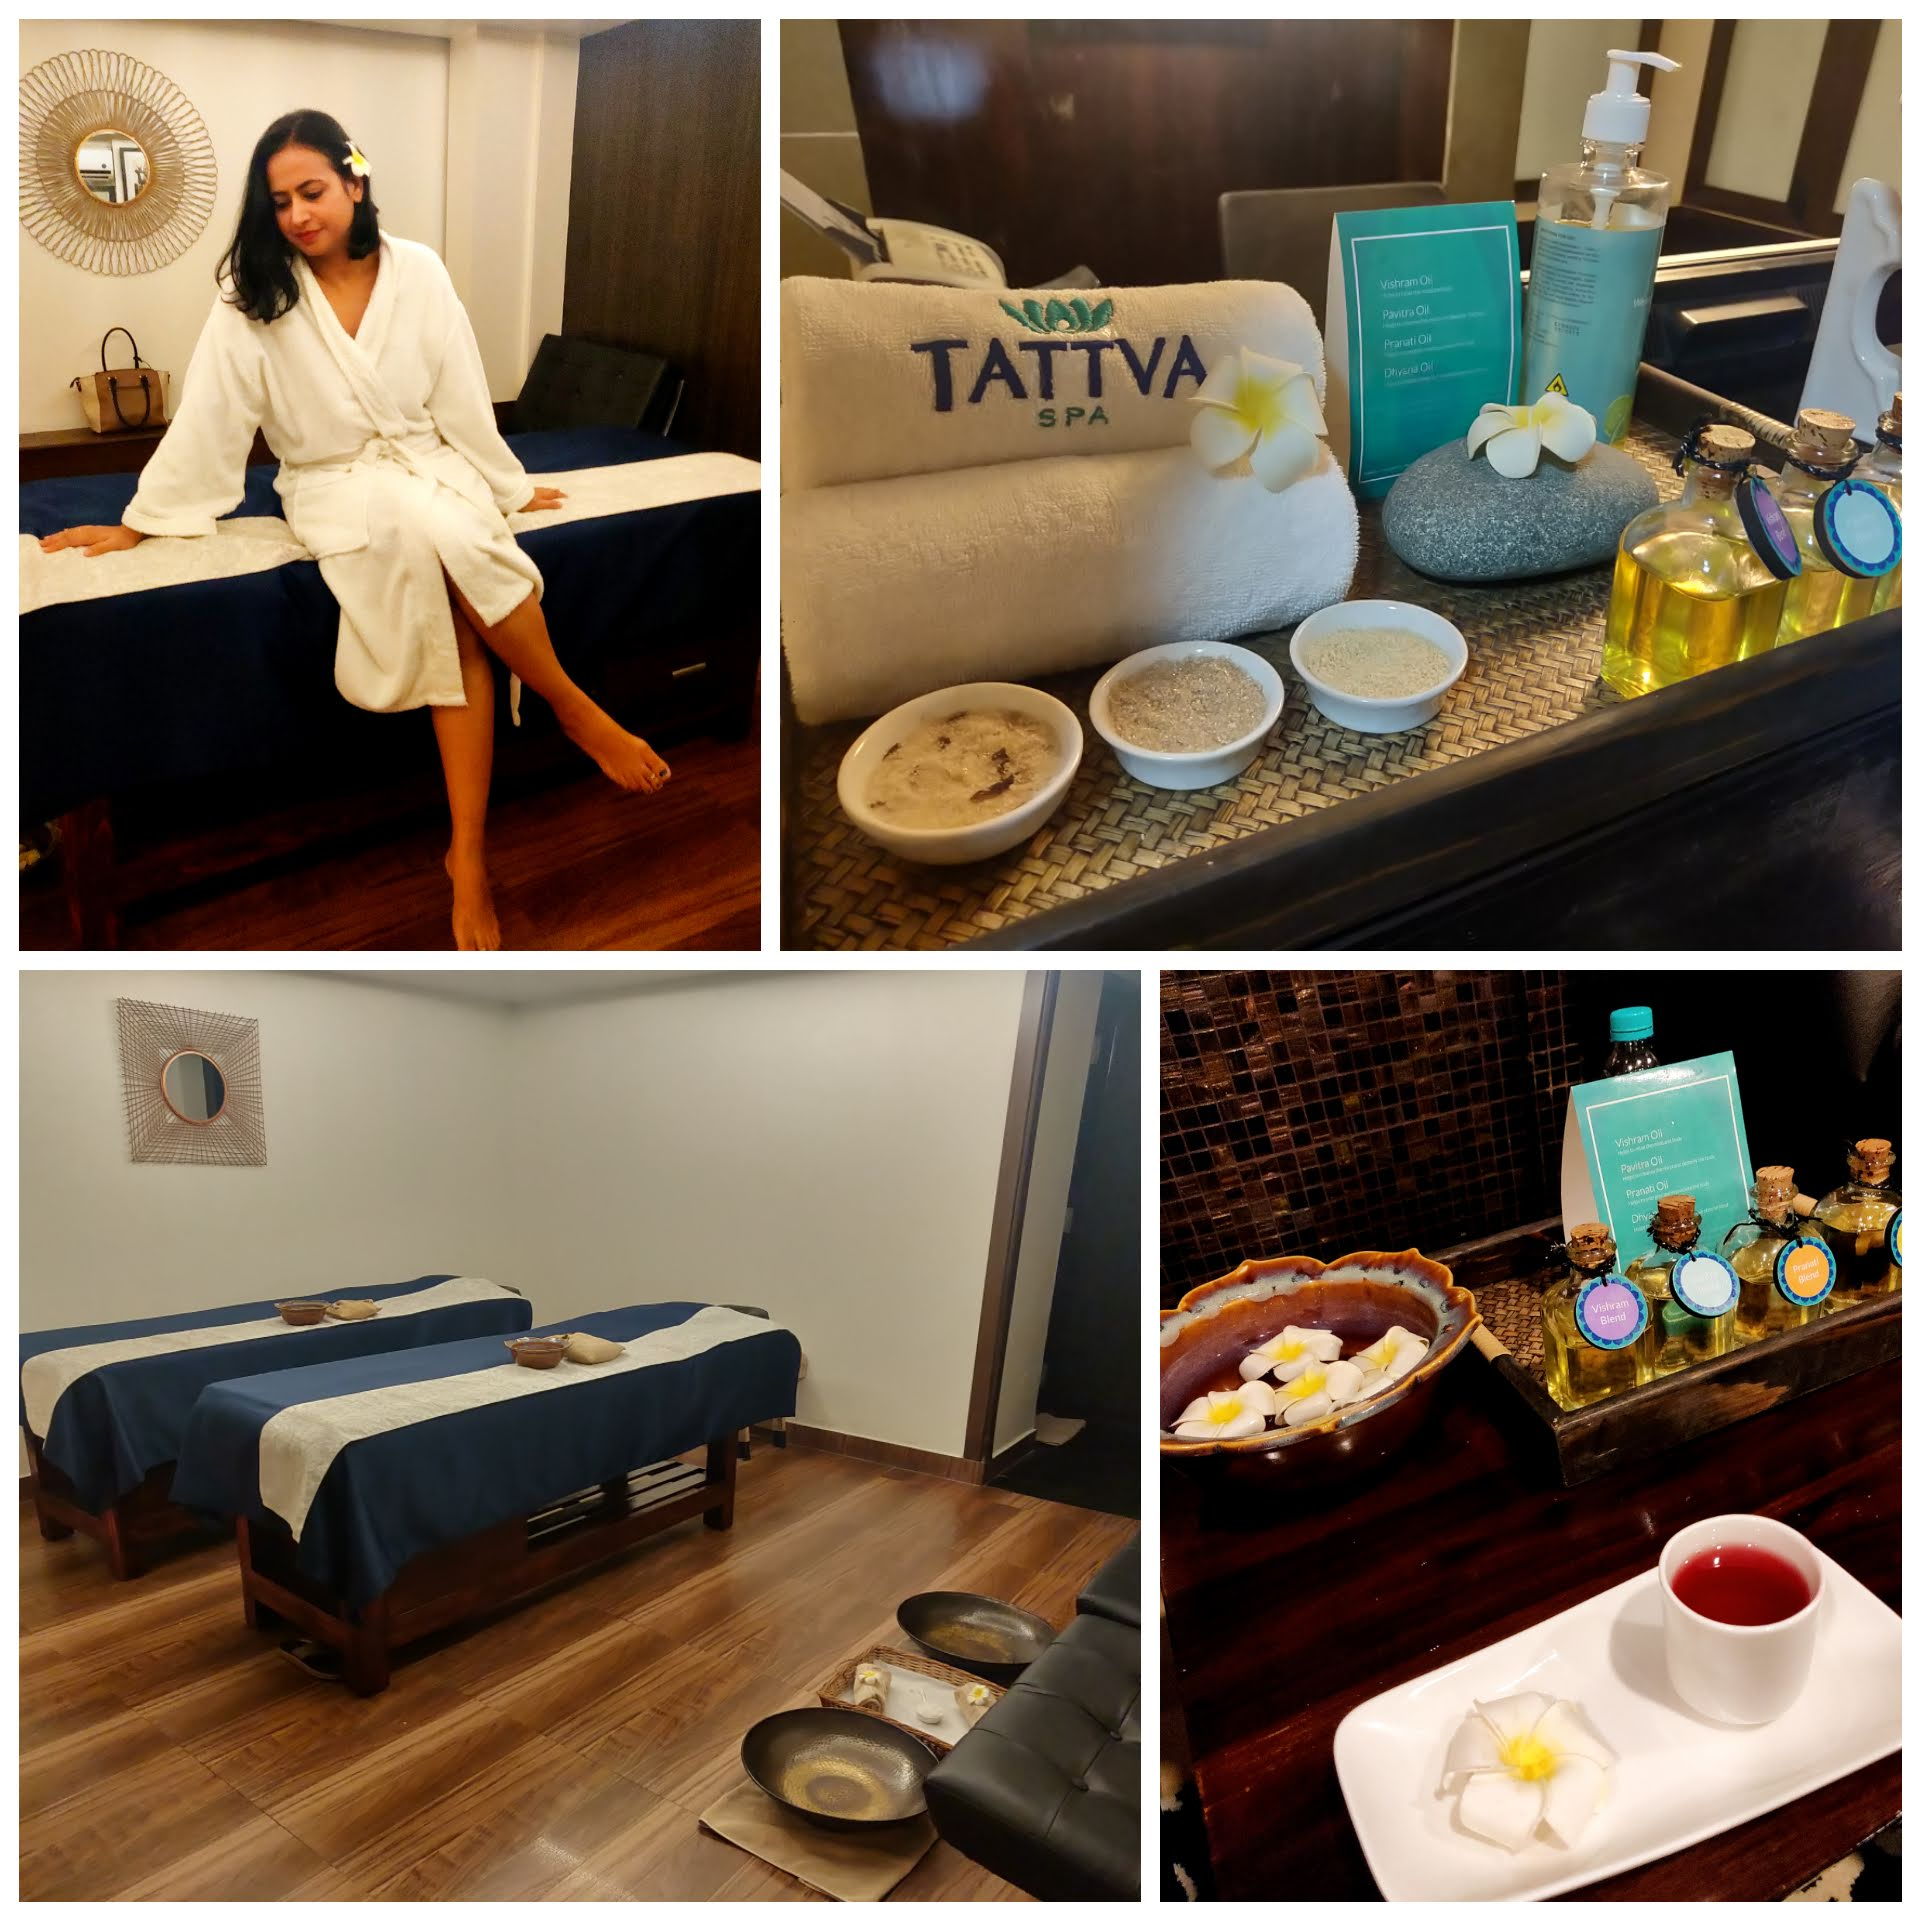 Tattva Spa Bangalore Review A Blissful Rejuvenating Experience Madhuonthego When the price hits the target price, an alert will be sent to you via browser notification. tattva spa bangalore review a